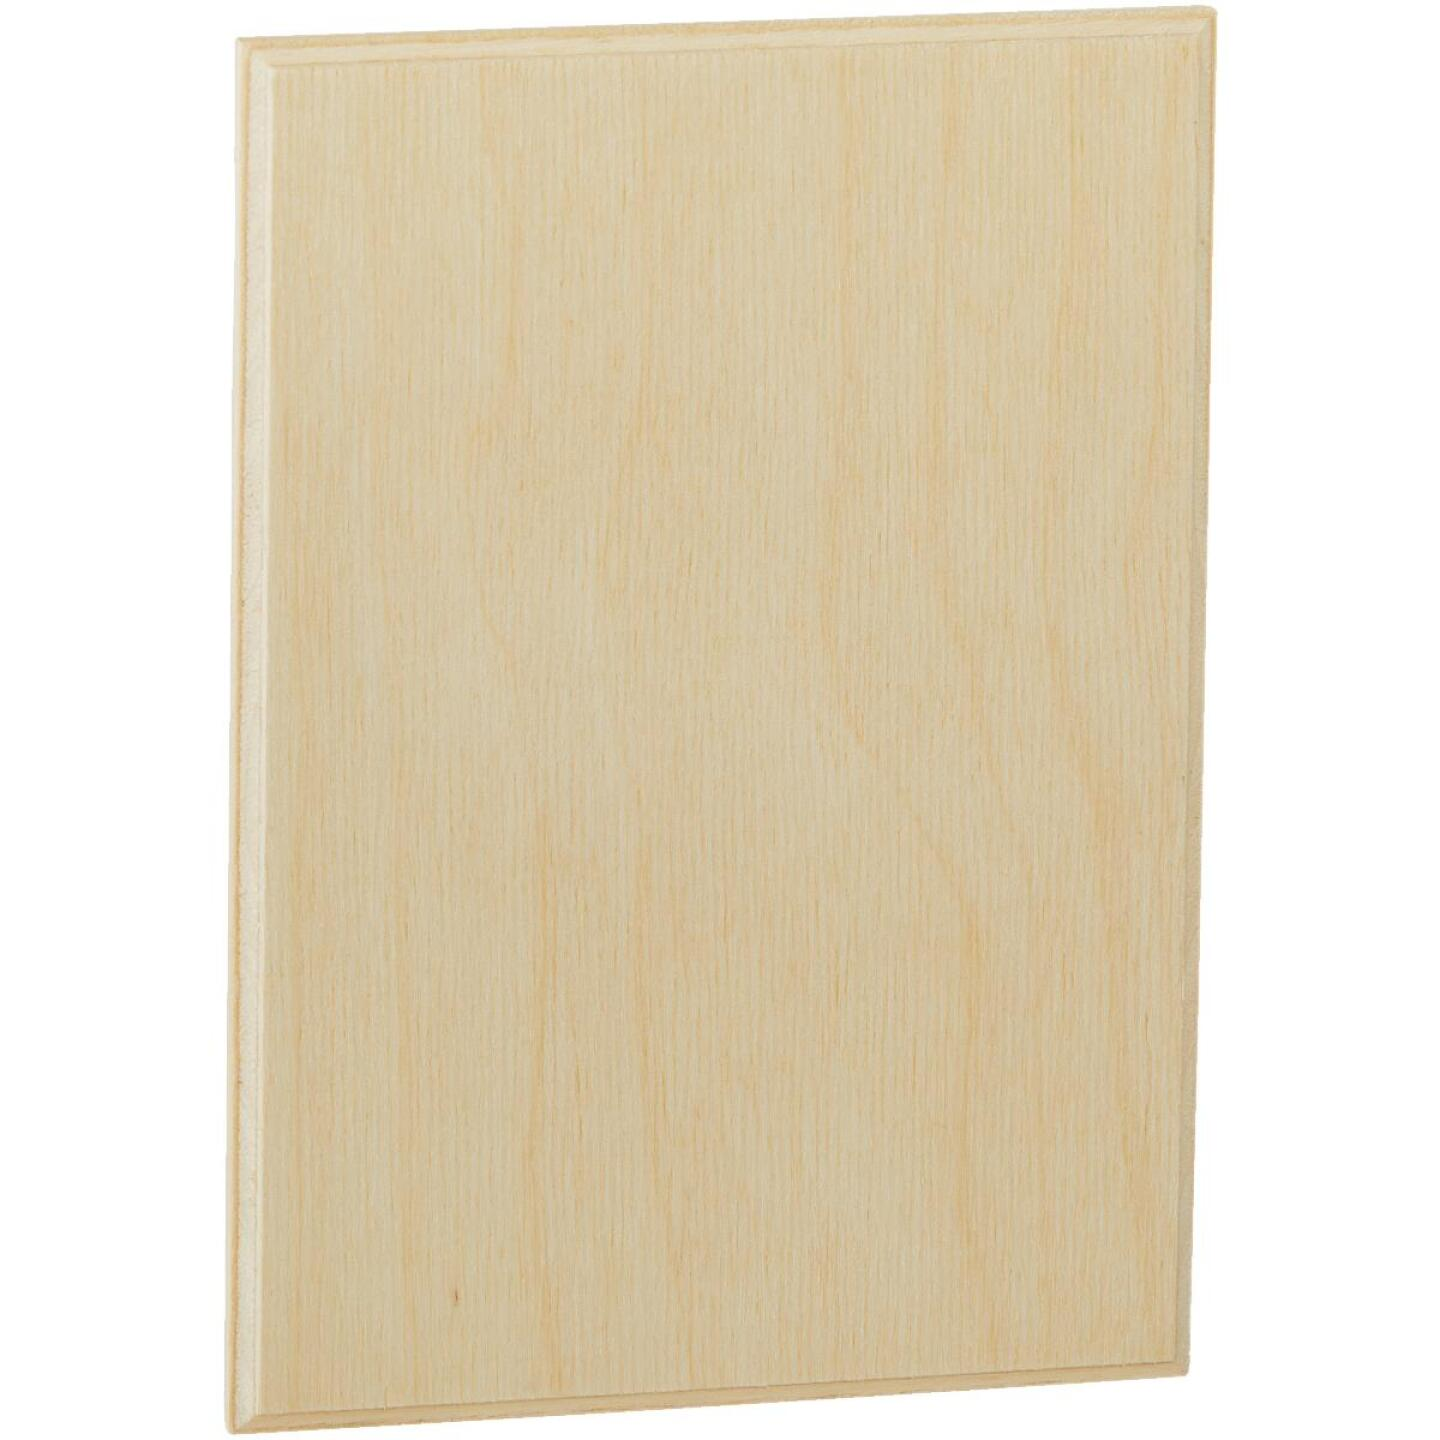 Walnut Hollow 5.25 In. x 7.25 In. Rectangular Unfinished Wood Plaque Image 1